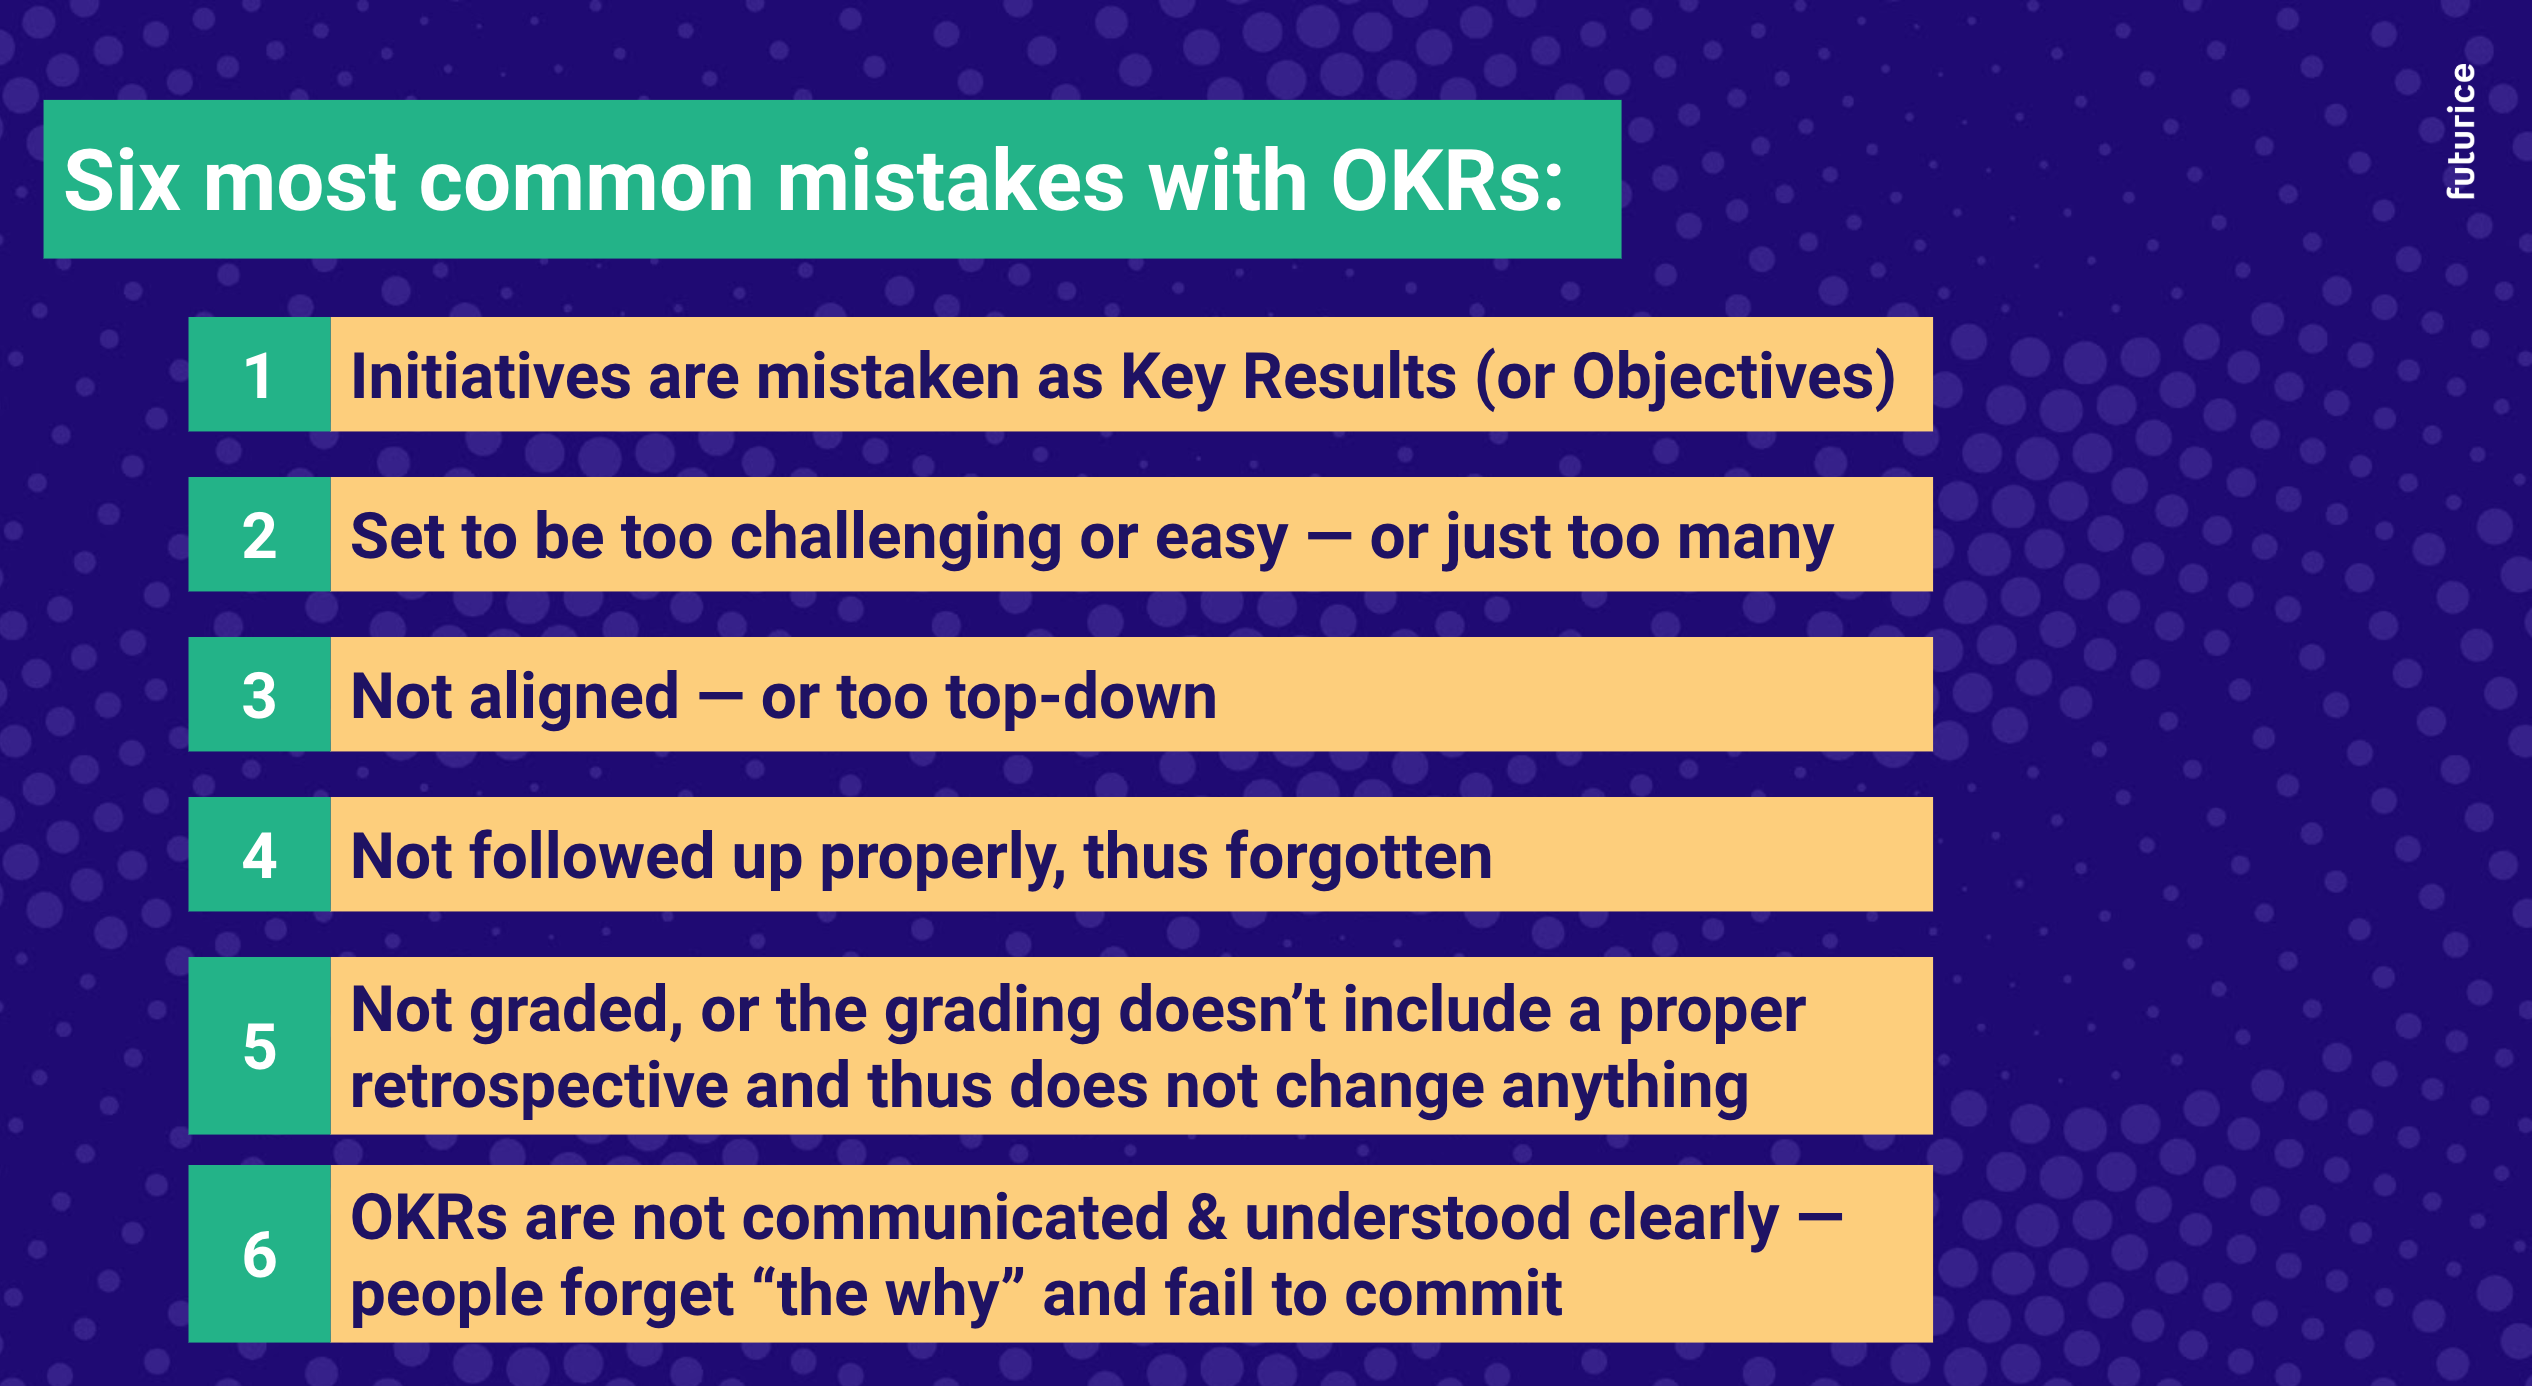 Six common mistakes with OKRs